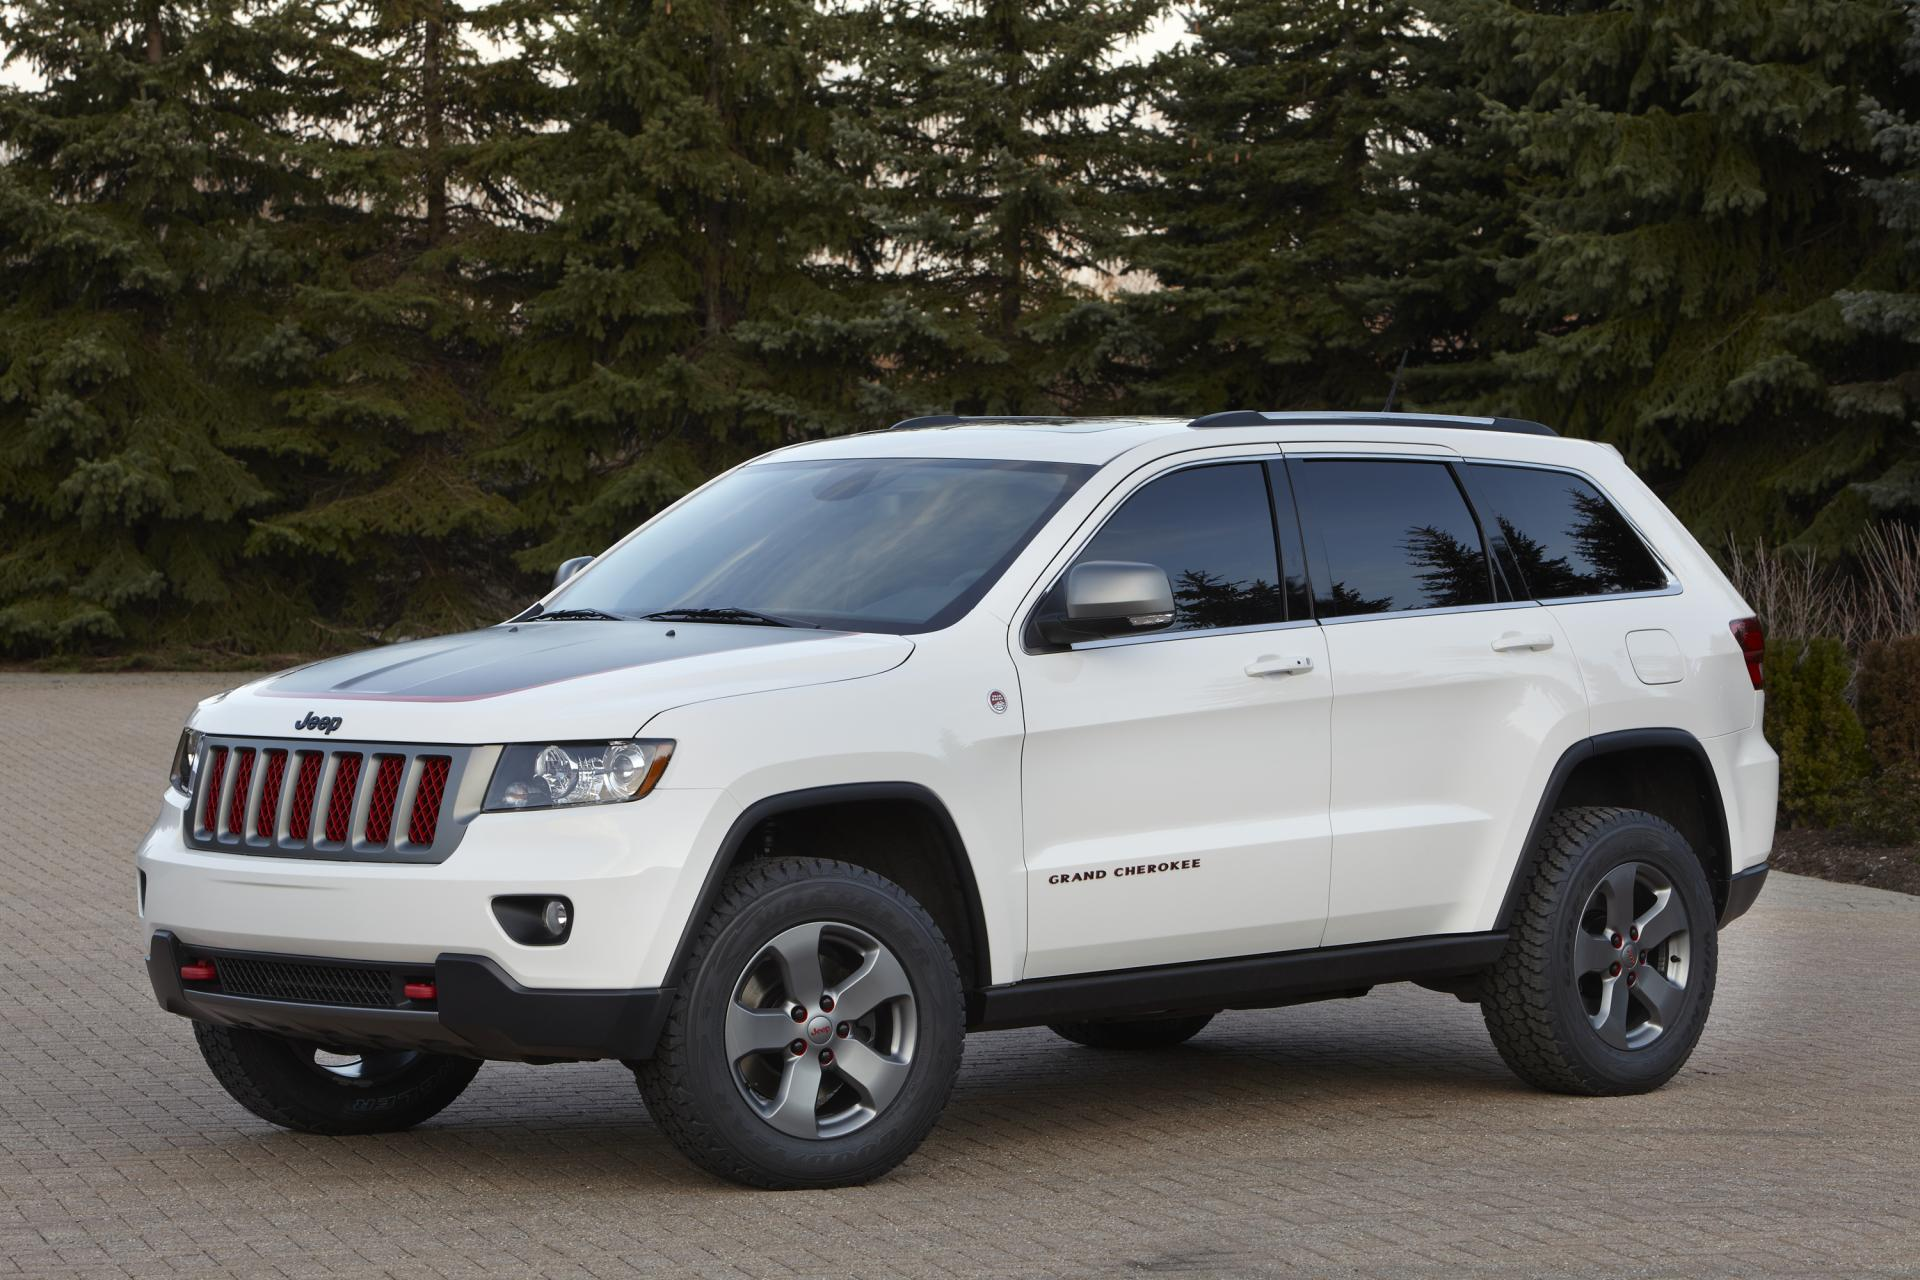 2012 jeep grand cherokee trailhawk concept. Black Bedroom Furniture Sets. Home Design Ideas